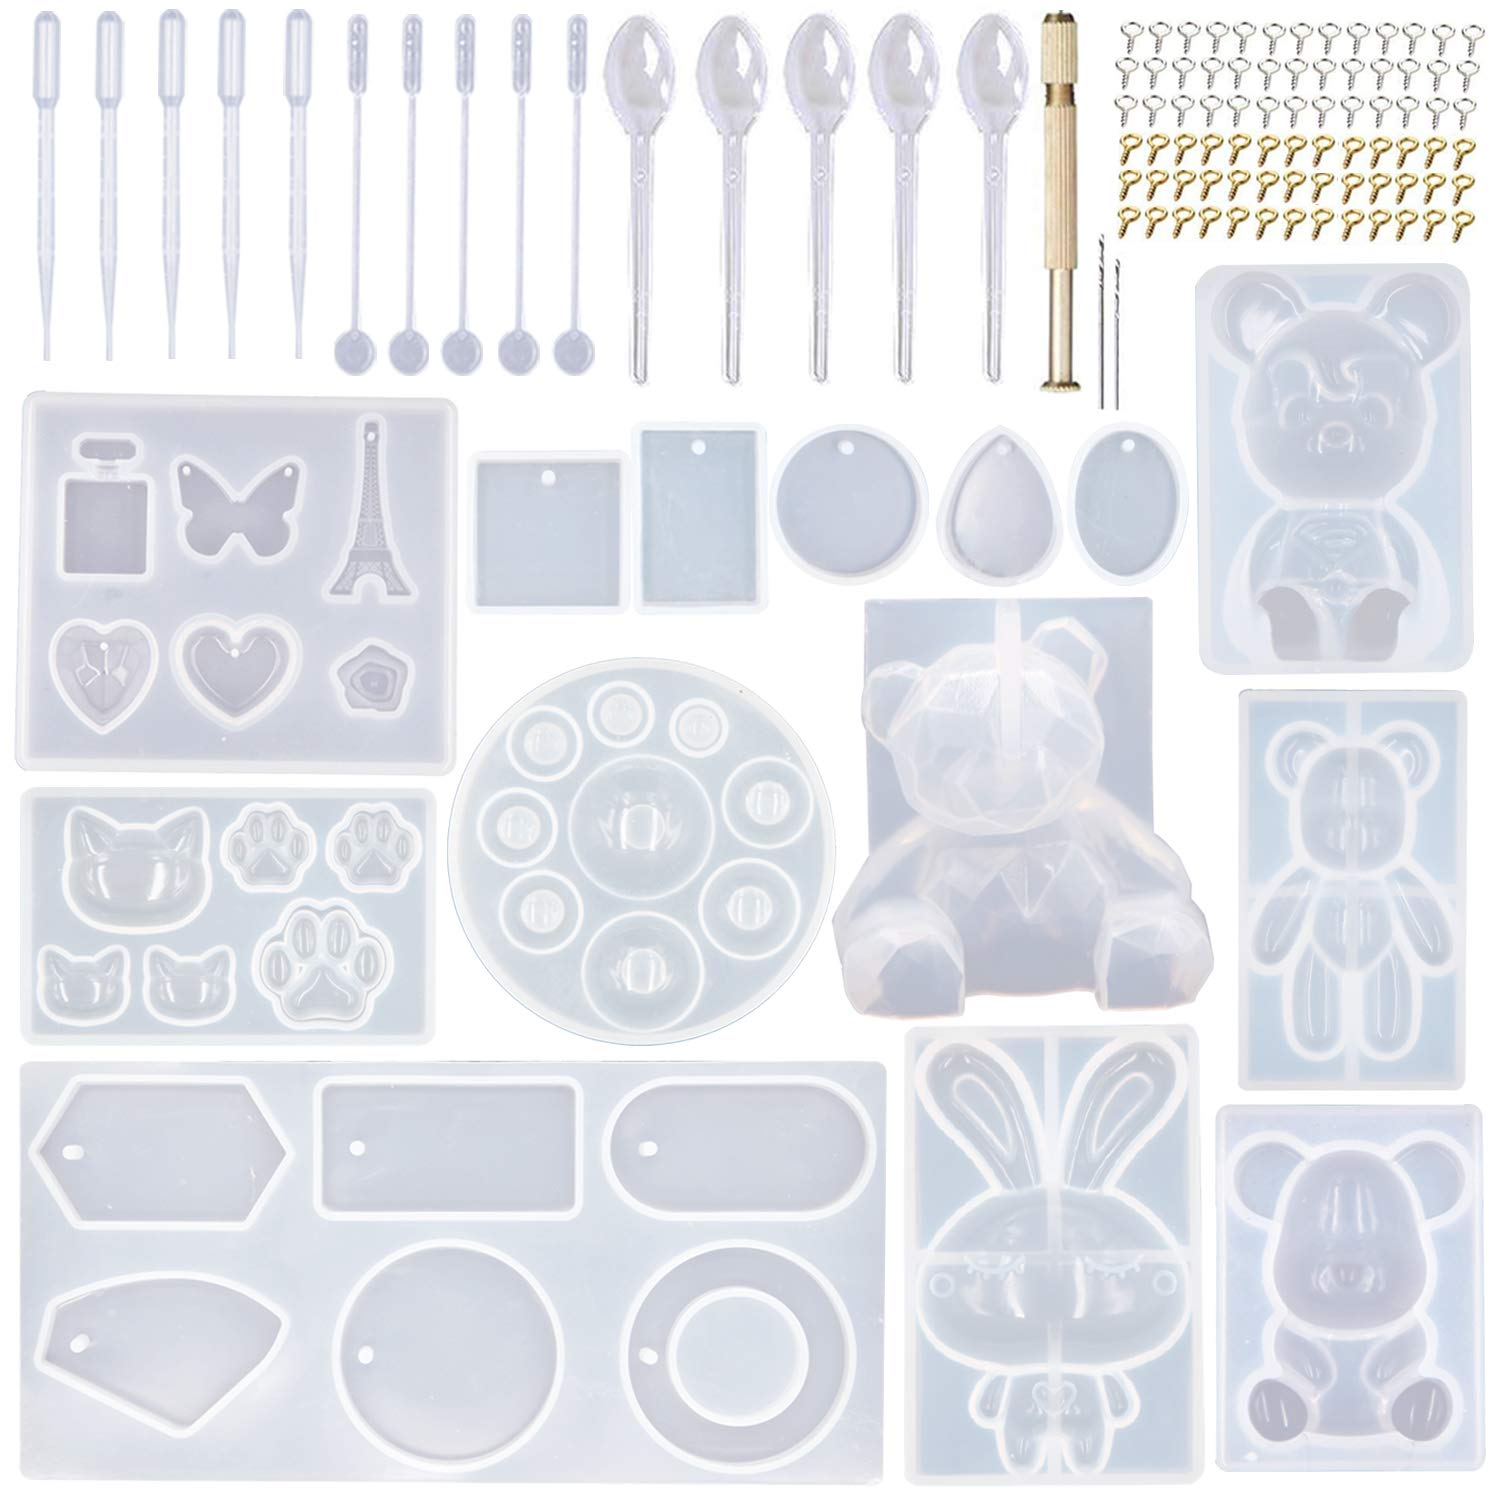 EuTengHao 132Pcs Animal Silicone Molds DIY Resin Casting Molds Kit Contains 4 Bears Resin Molds Rabbit Cat Paw Mold Necklace Pendant Resin Molds Time Gem Eiffel Tower Jewelry Crystal Resin Mold by EuTengHao